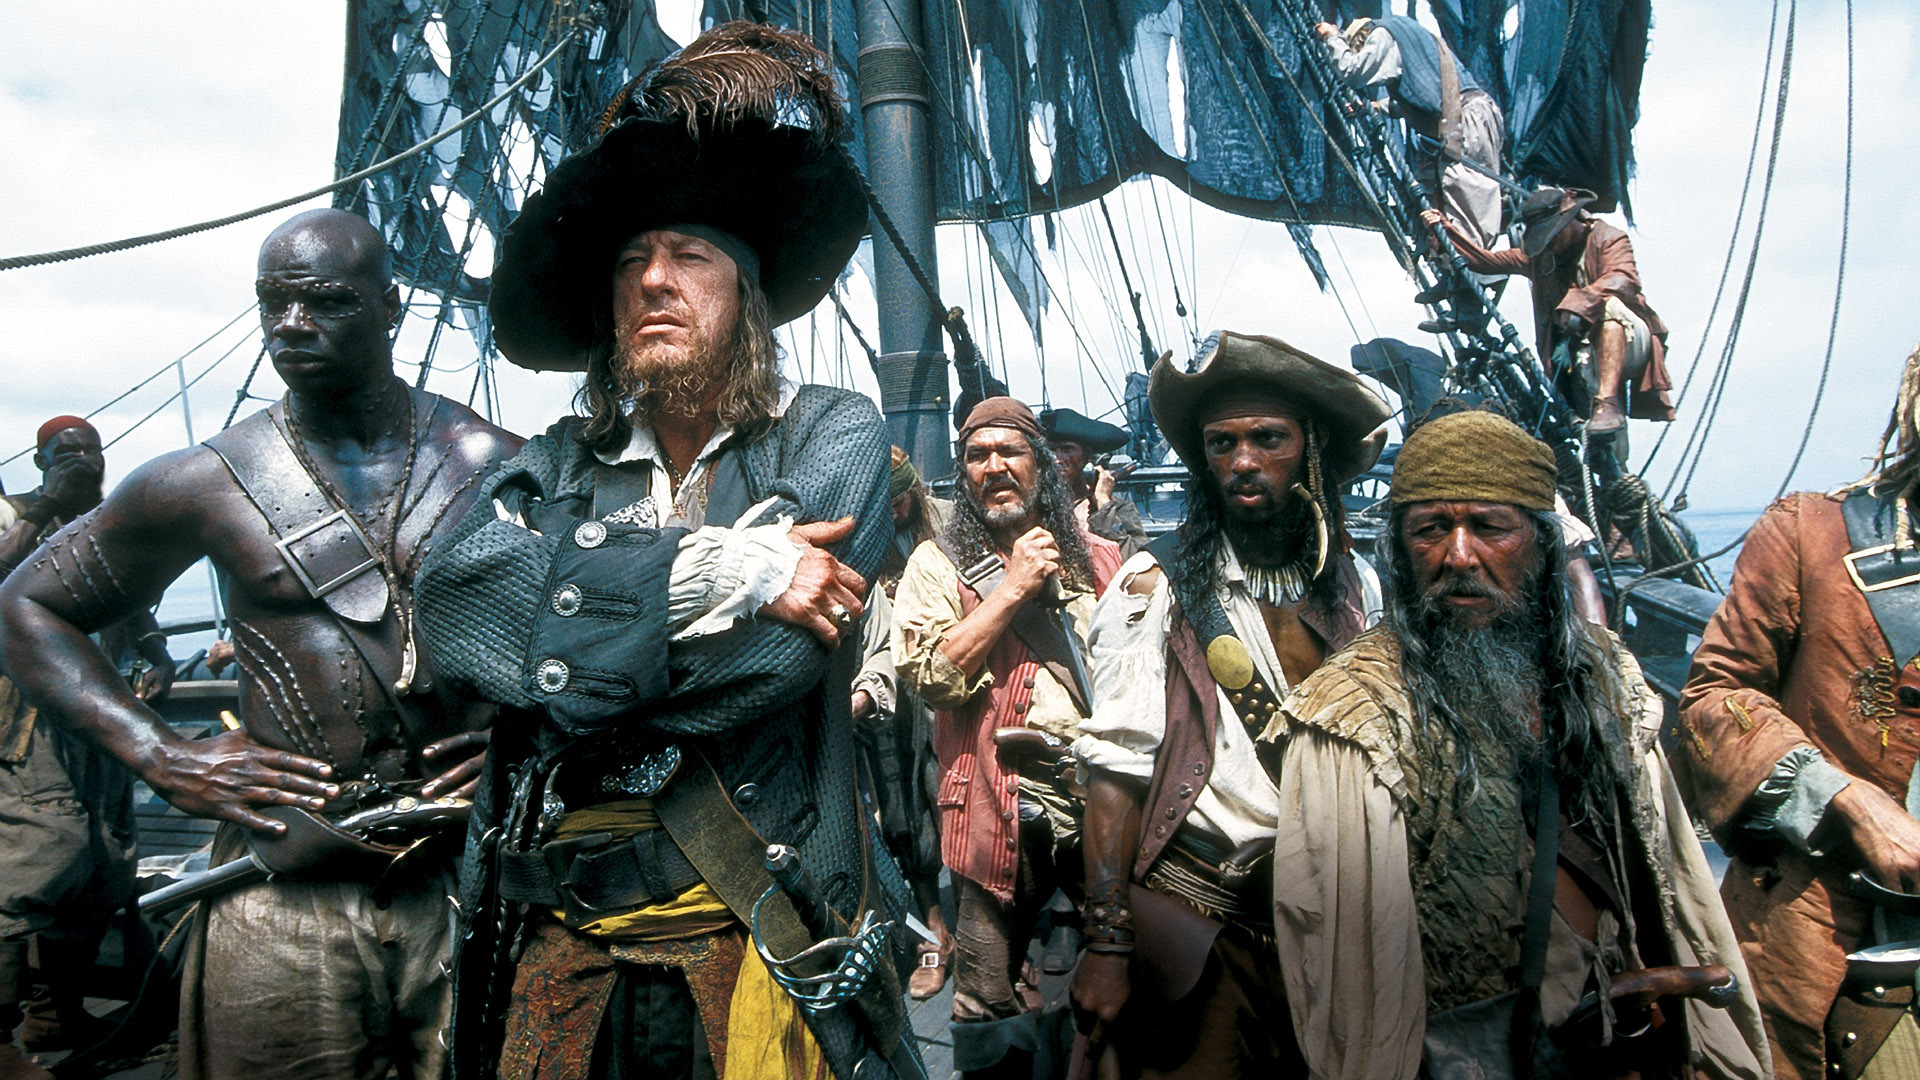 Captain Barbossa (Geoffrey Rush) and his crew of cursed pirates in Pirates of the Caribbean: The Curse of the Black Pearl (2003)